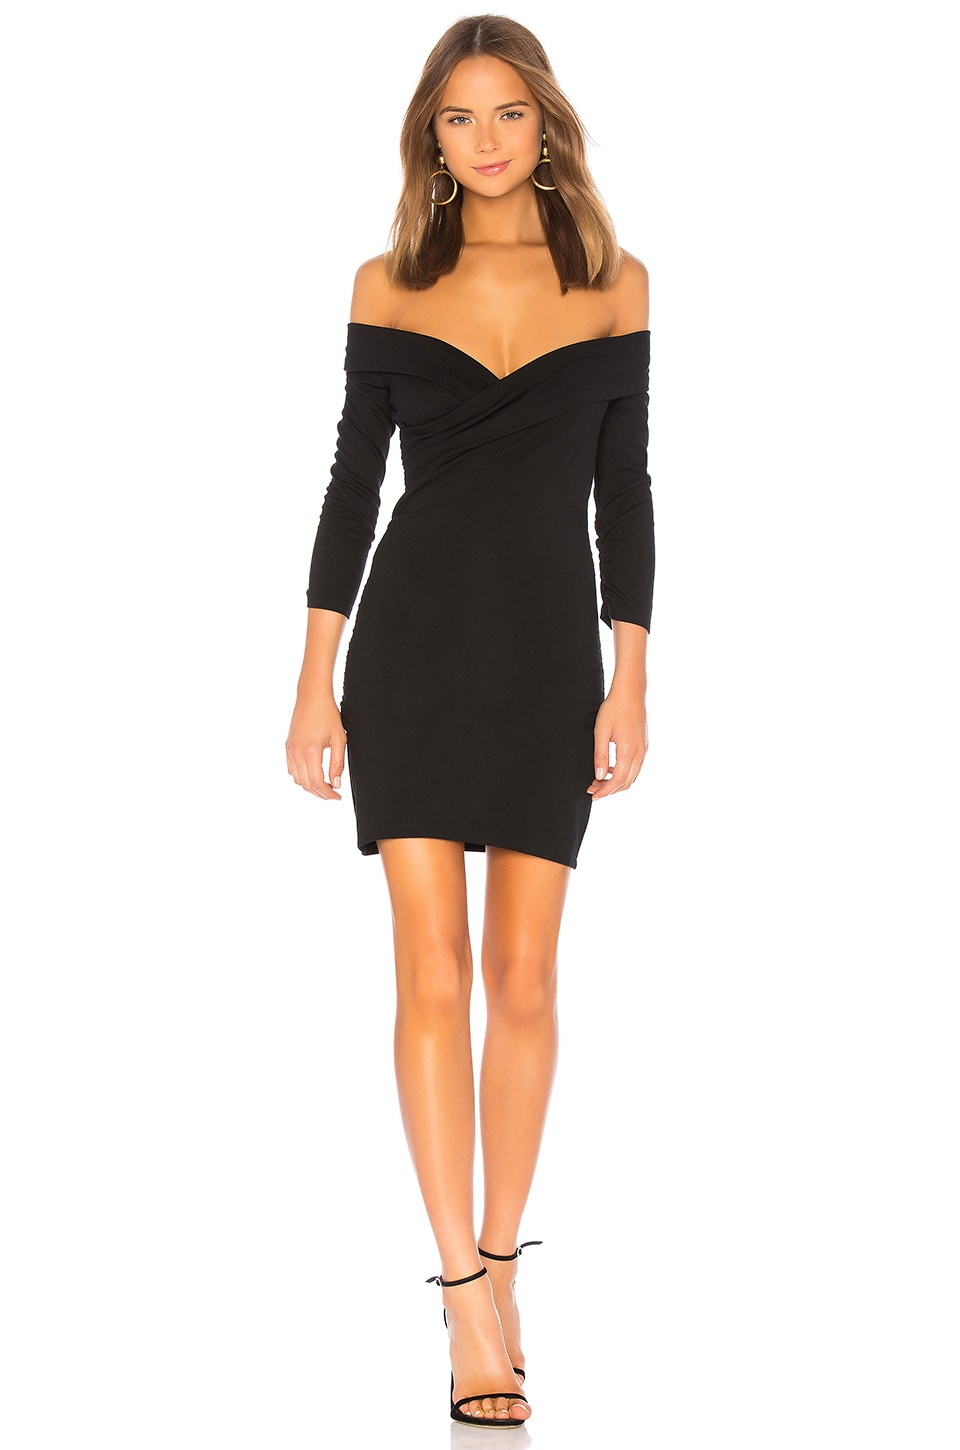 MAJORELLE Cypress Dress in Black